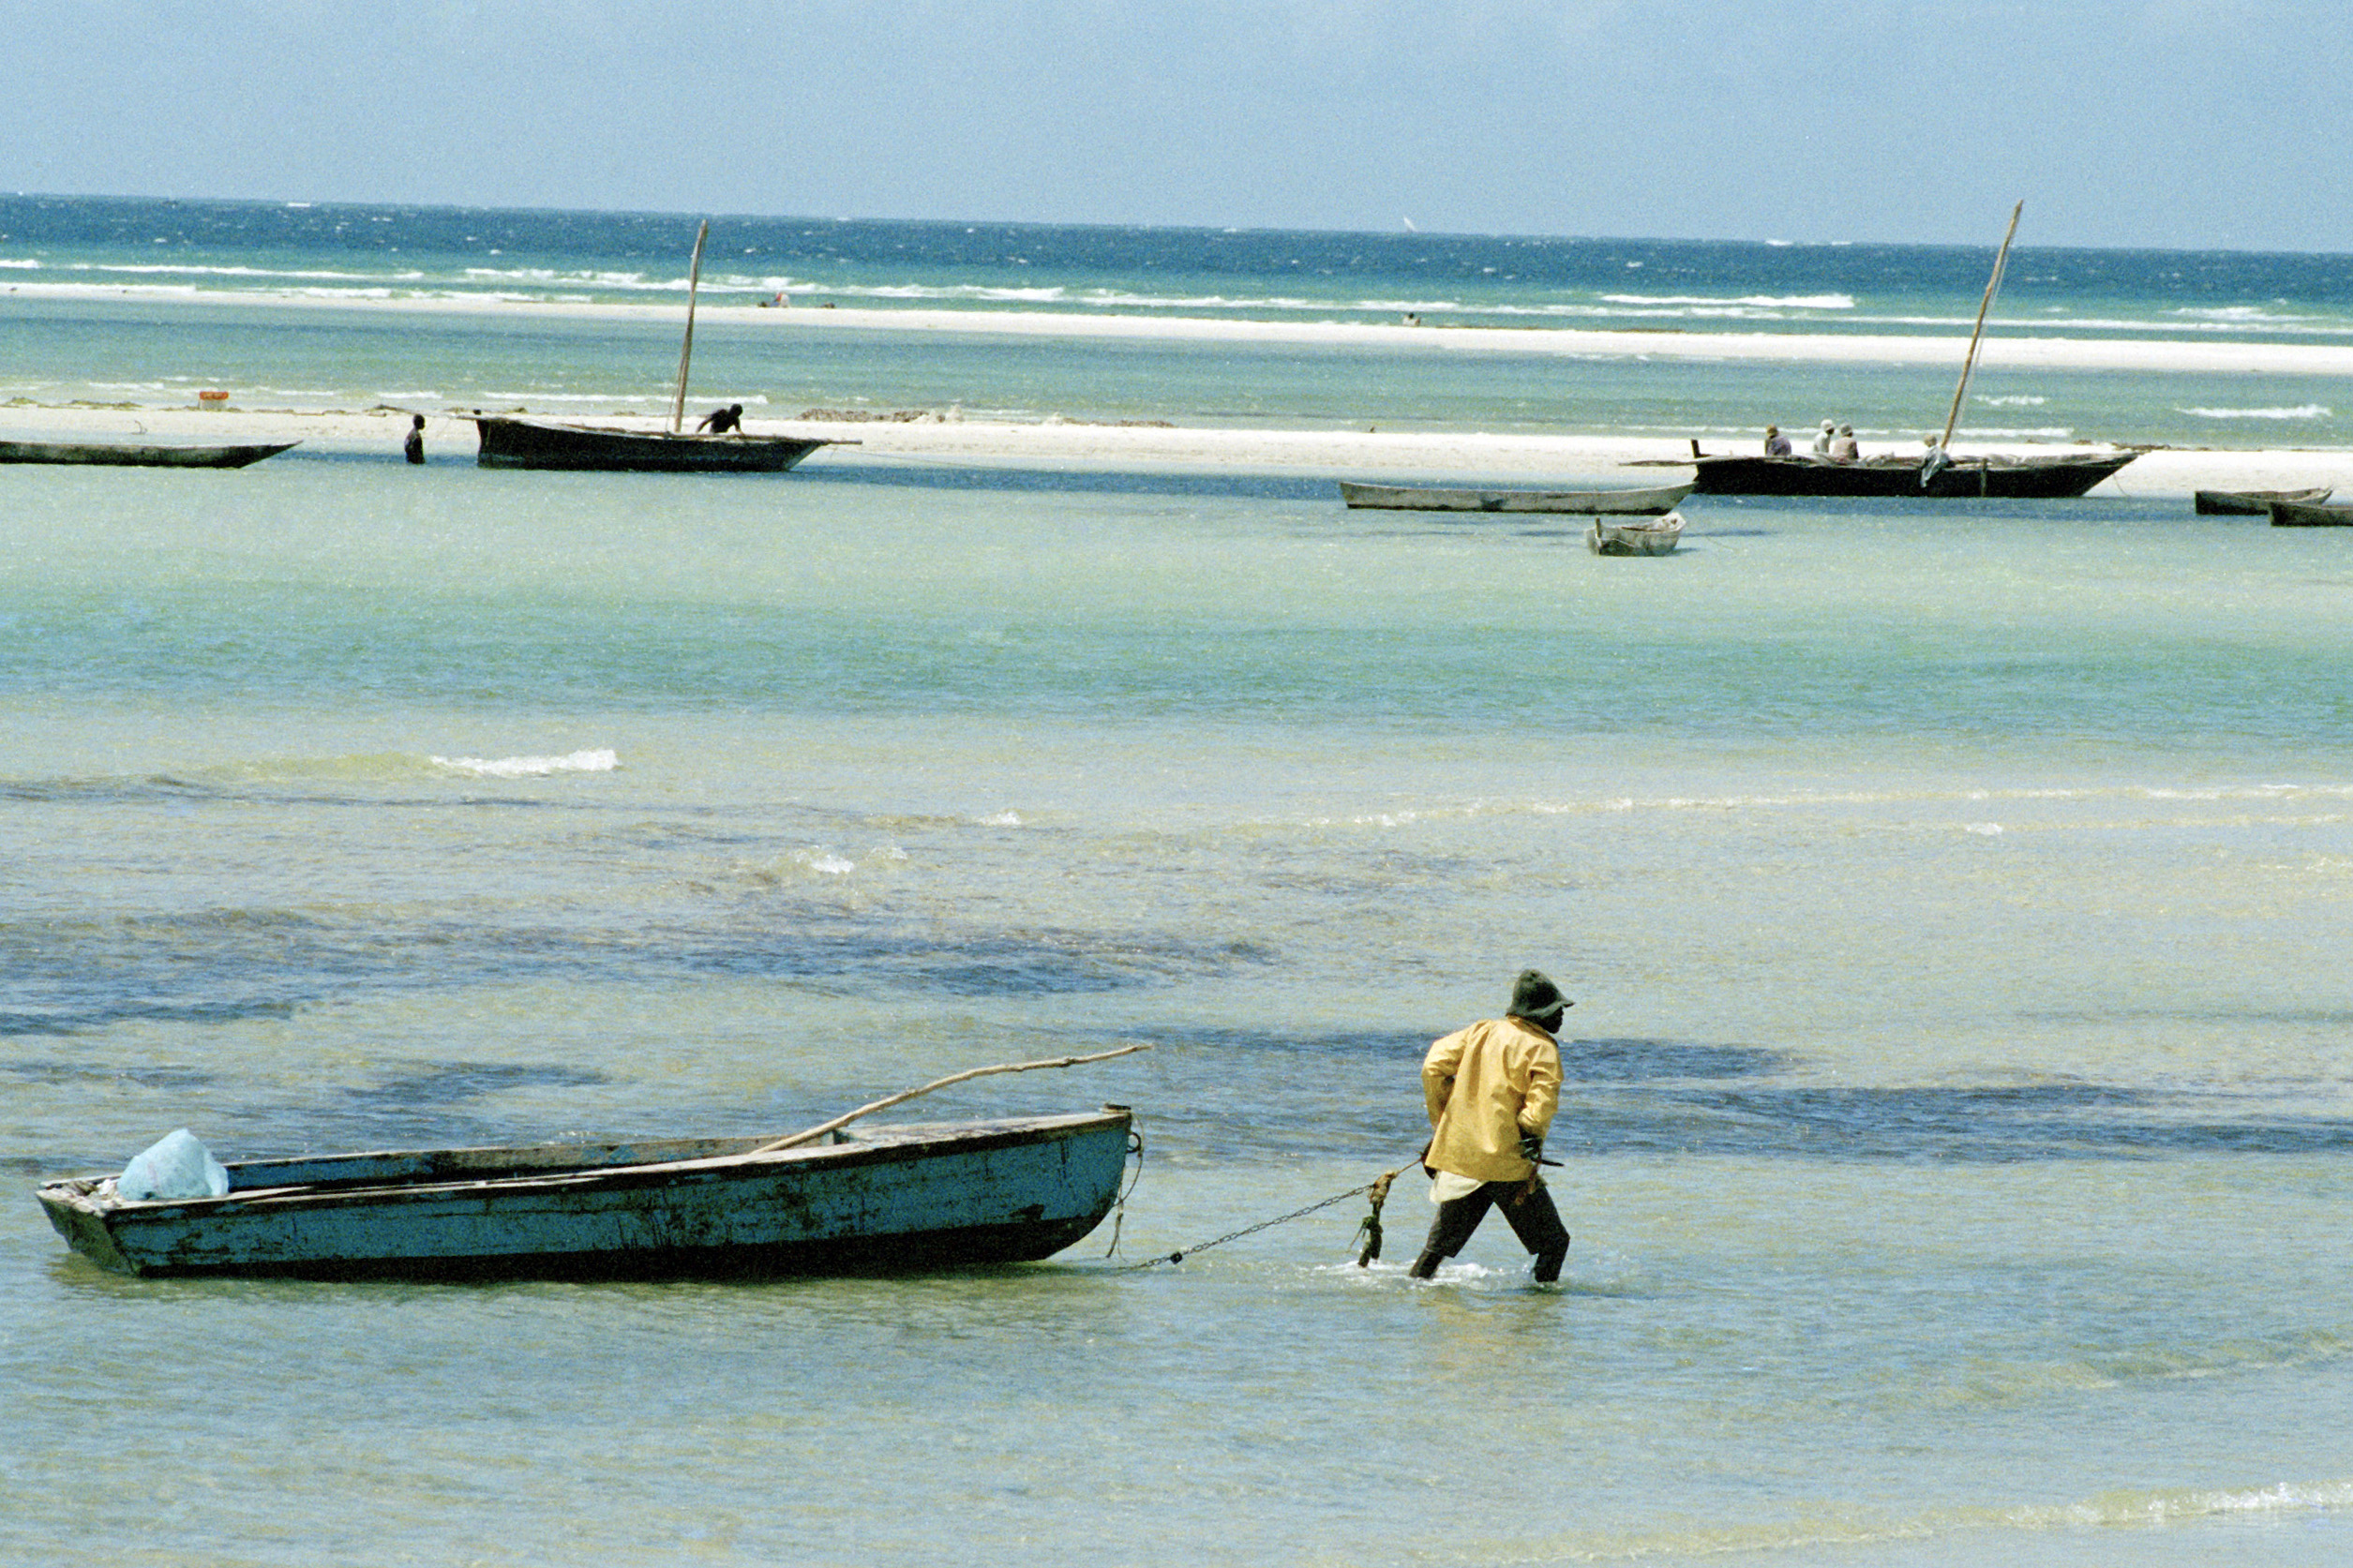 Fisherman dragging boat in shallow water